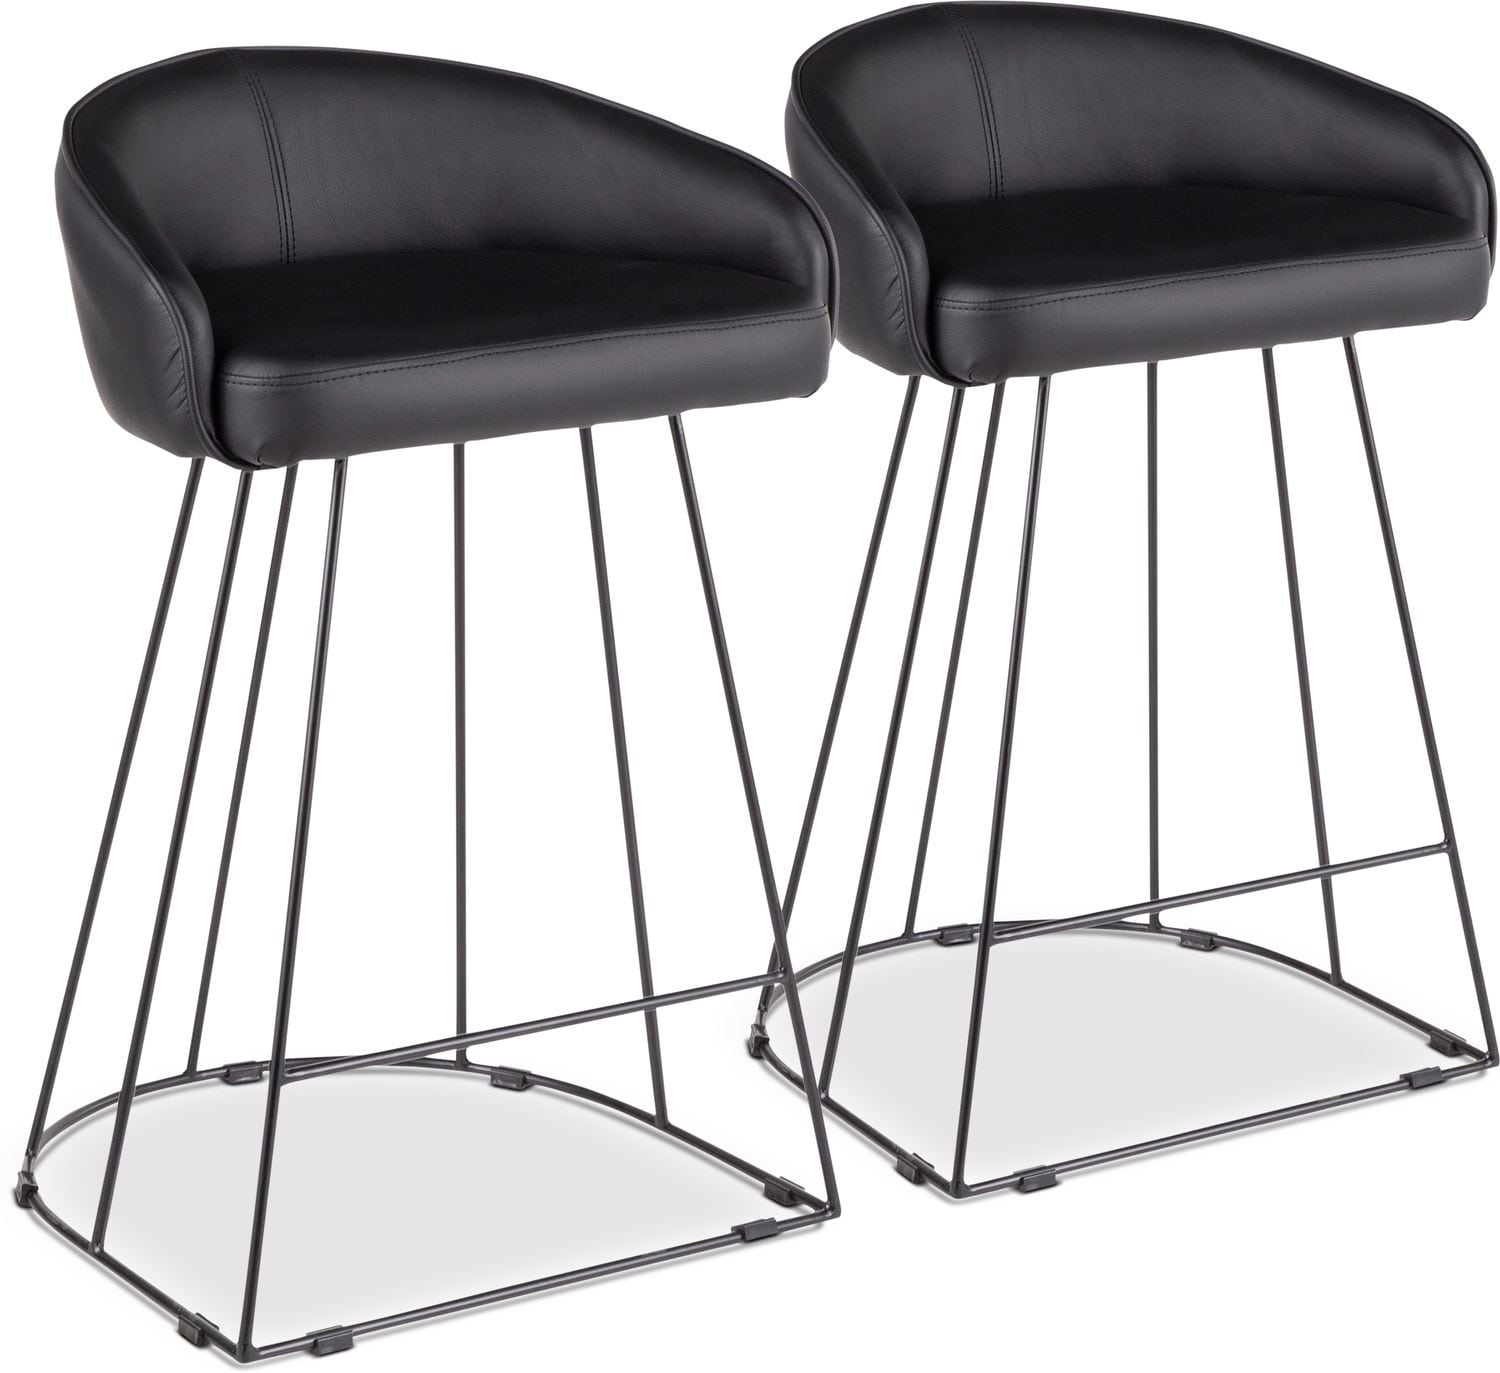 Dining Room Furniture - Gem Set of 2 Counter-Height Stools